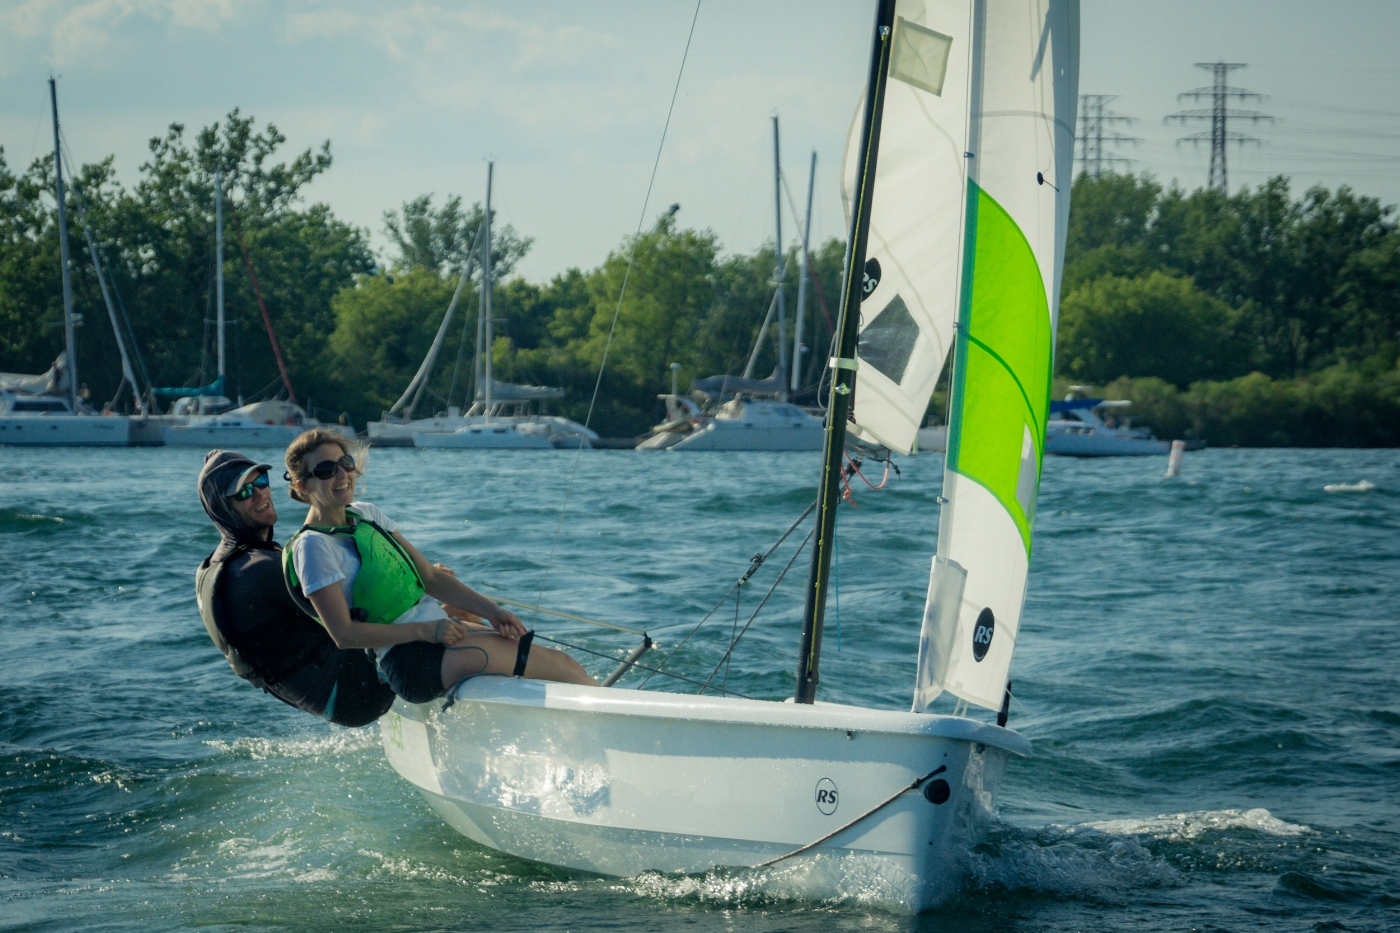 RS Quest two person sailboat - available for pay as you go rental in Toronto